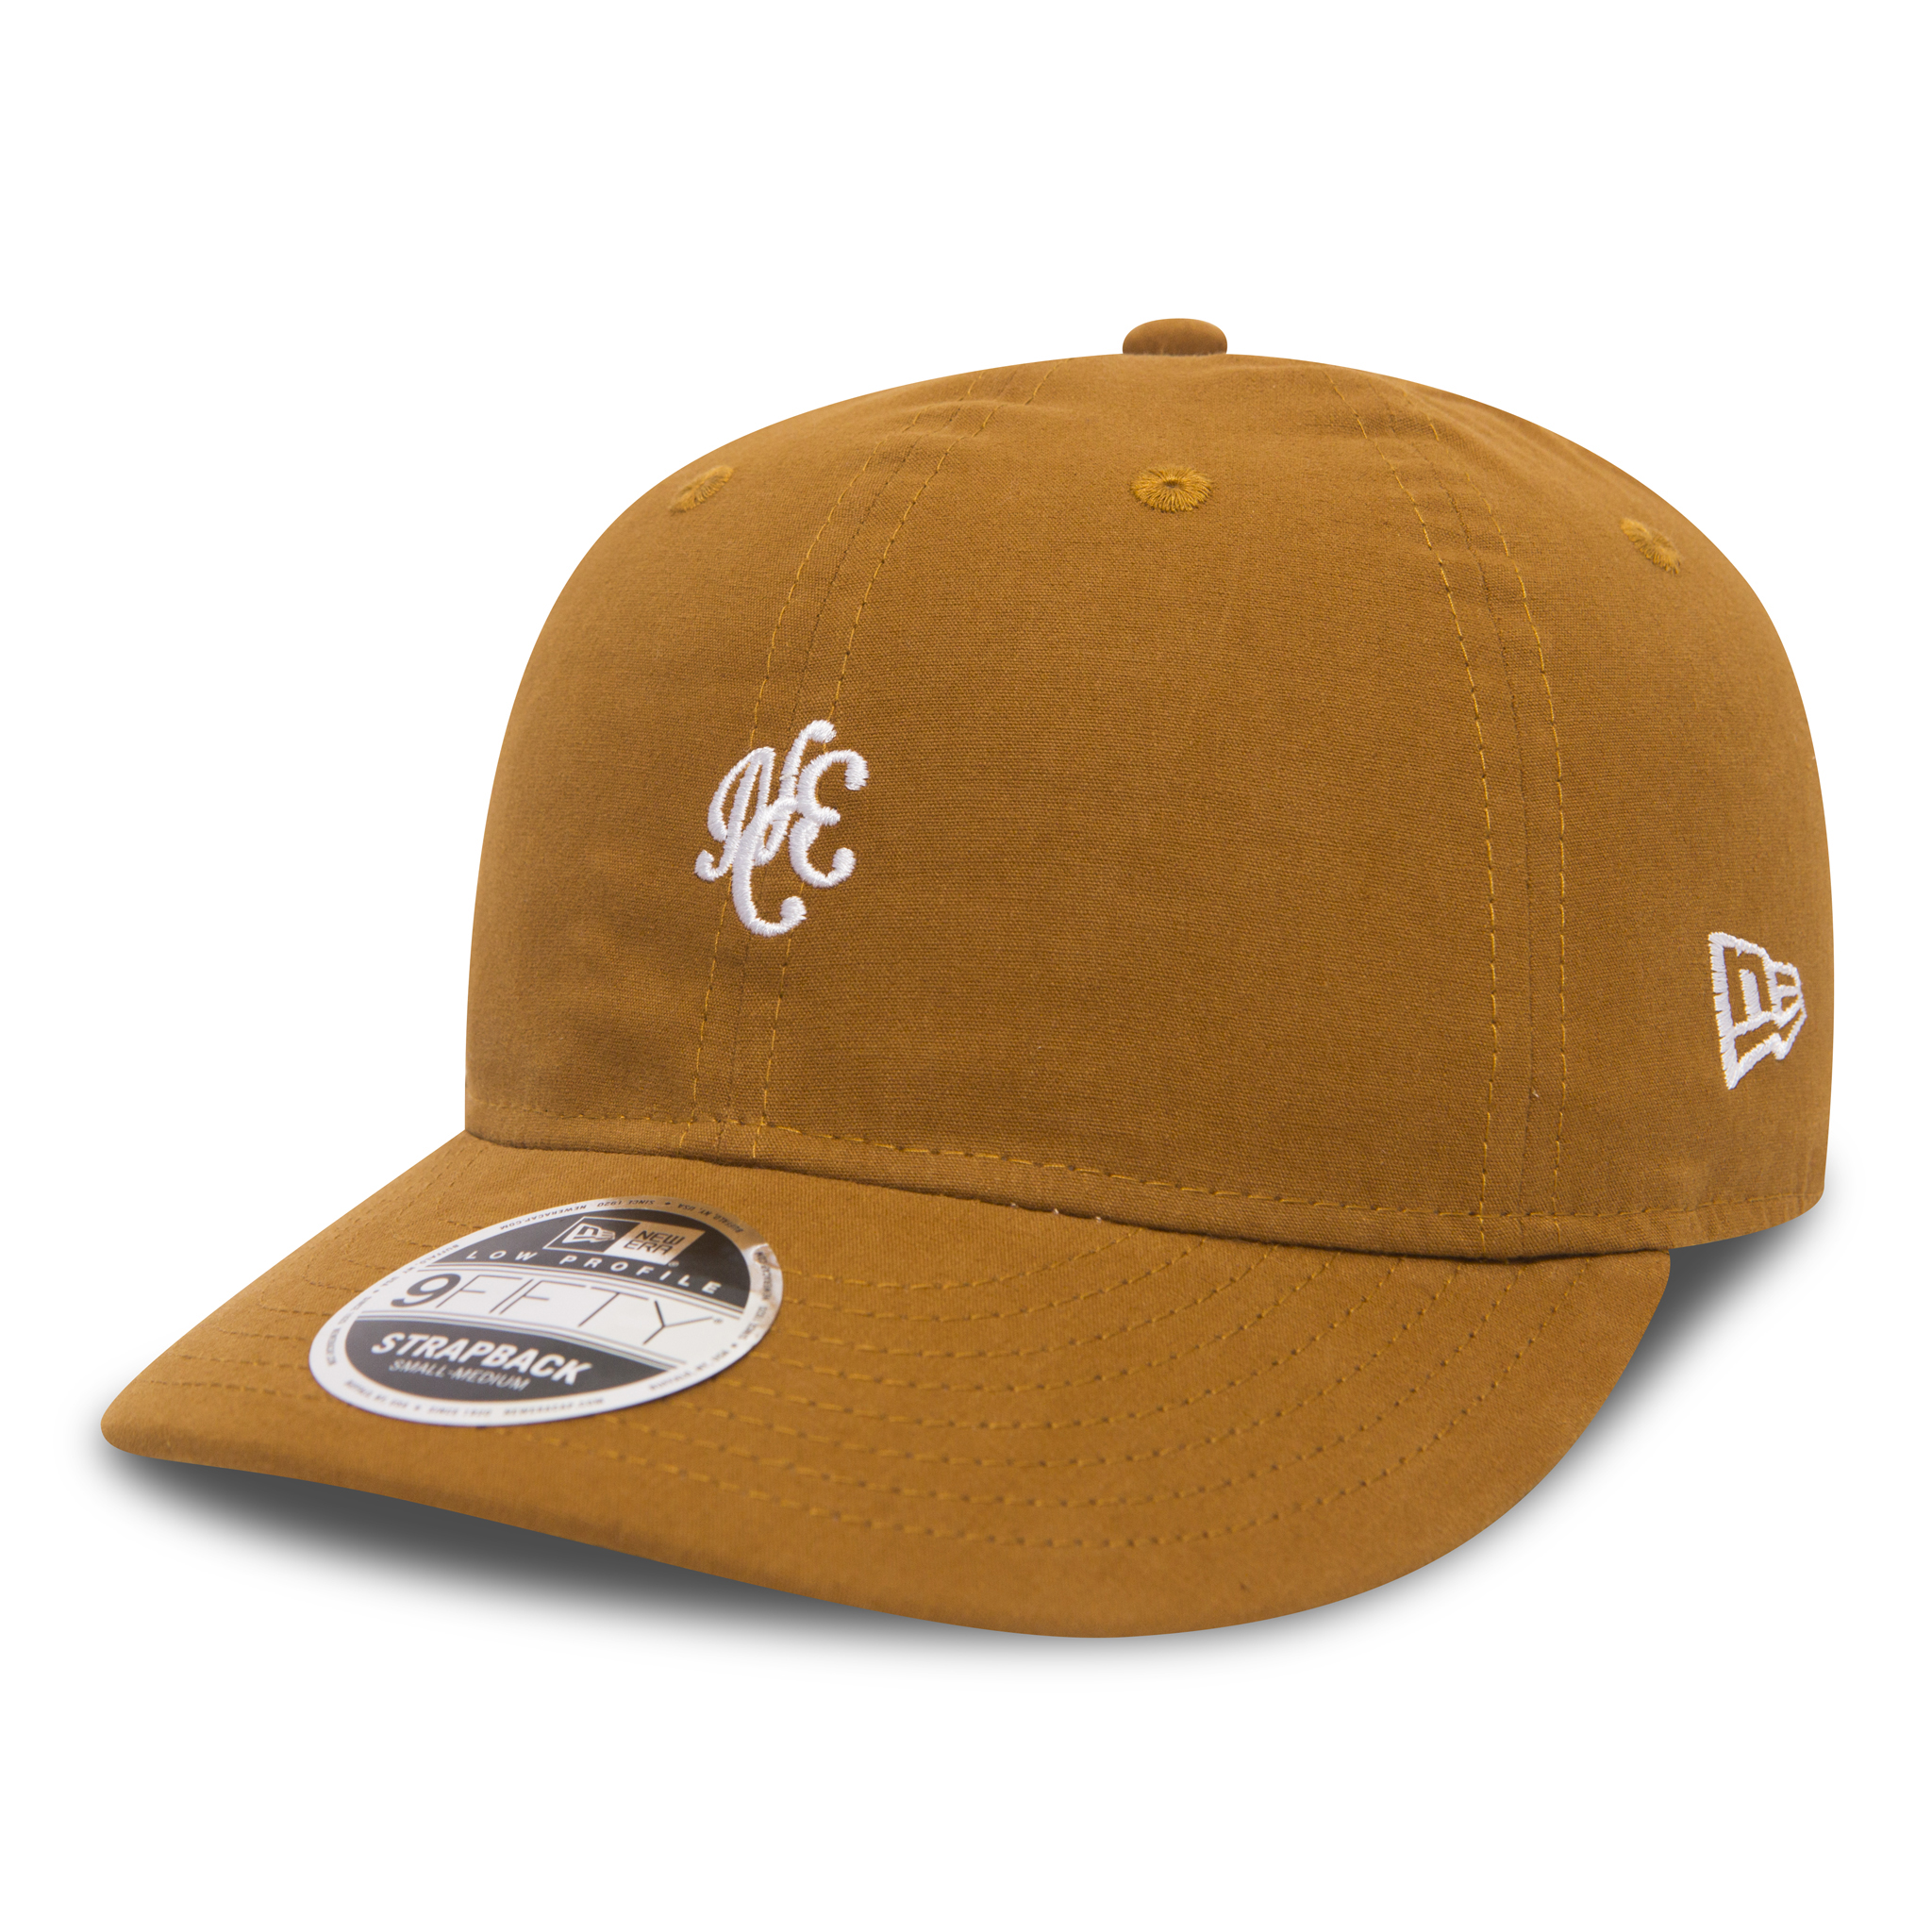 New Era Lightweight Low Profile 9FIFTY Strapback  4375a7c4095